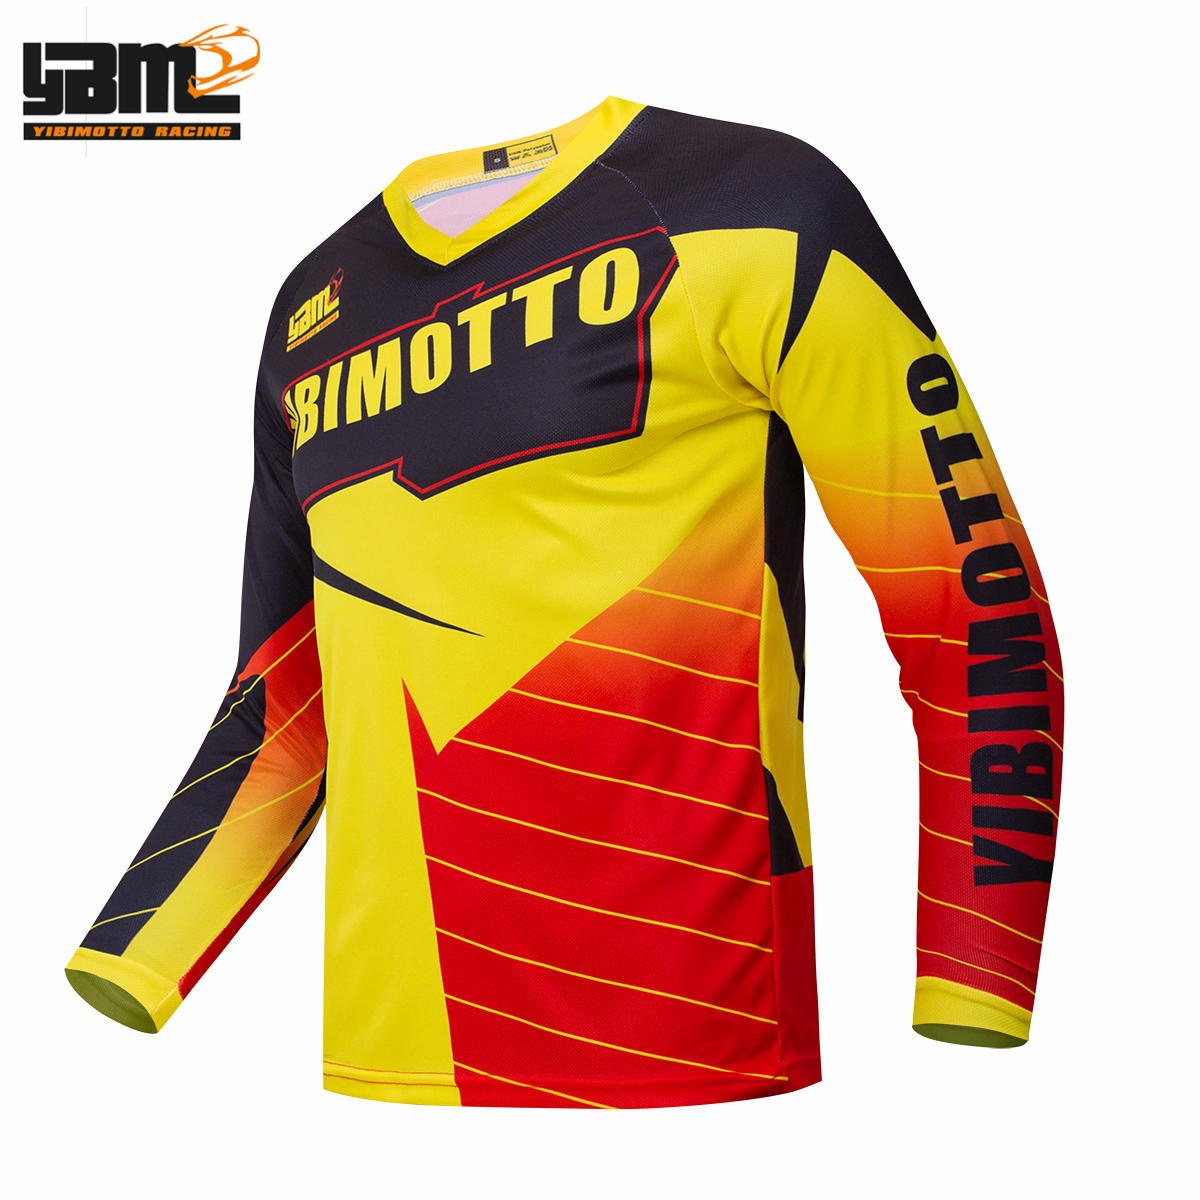 Downhill Jerseys Cycling-Clothes Shirt Bike Motorcycle Crssmax Racing Yellow DH MTB Off-Road